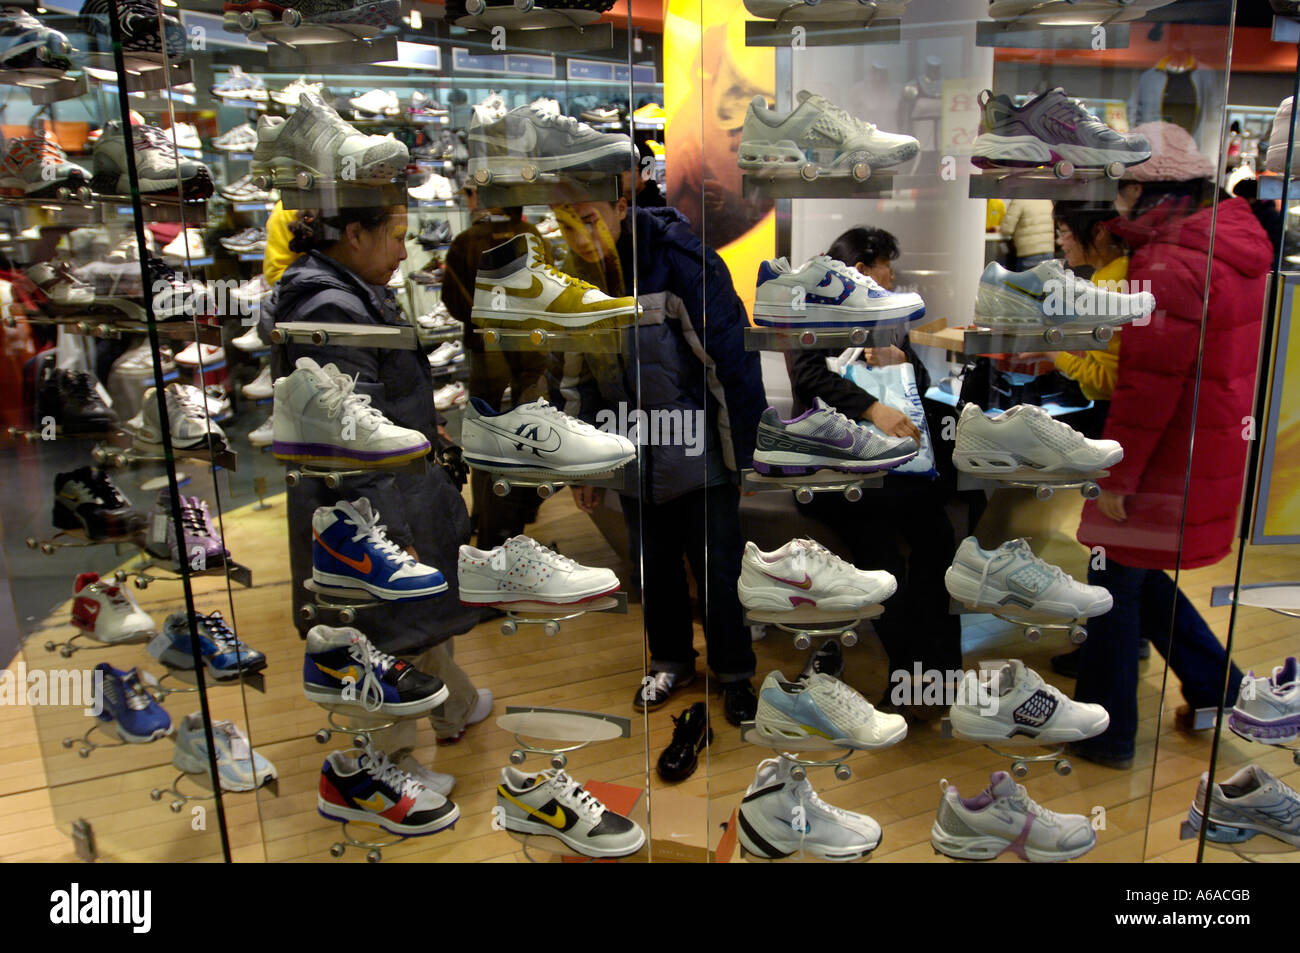 98fd9ae0f8 Nike shoes for sell in a store in Beijing China Dec 25 2005 - Stock Image